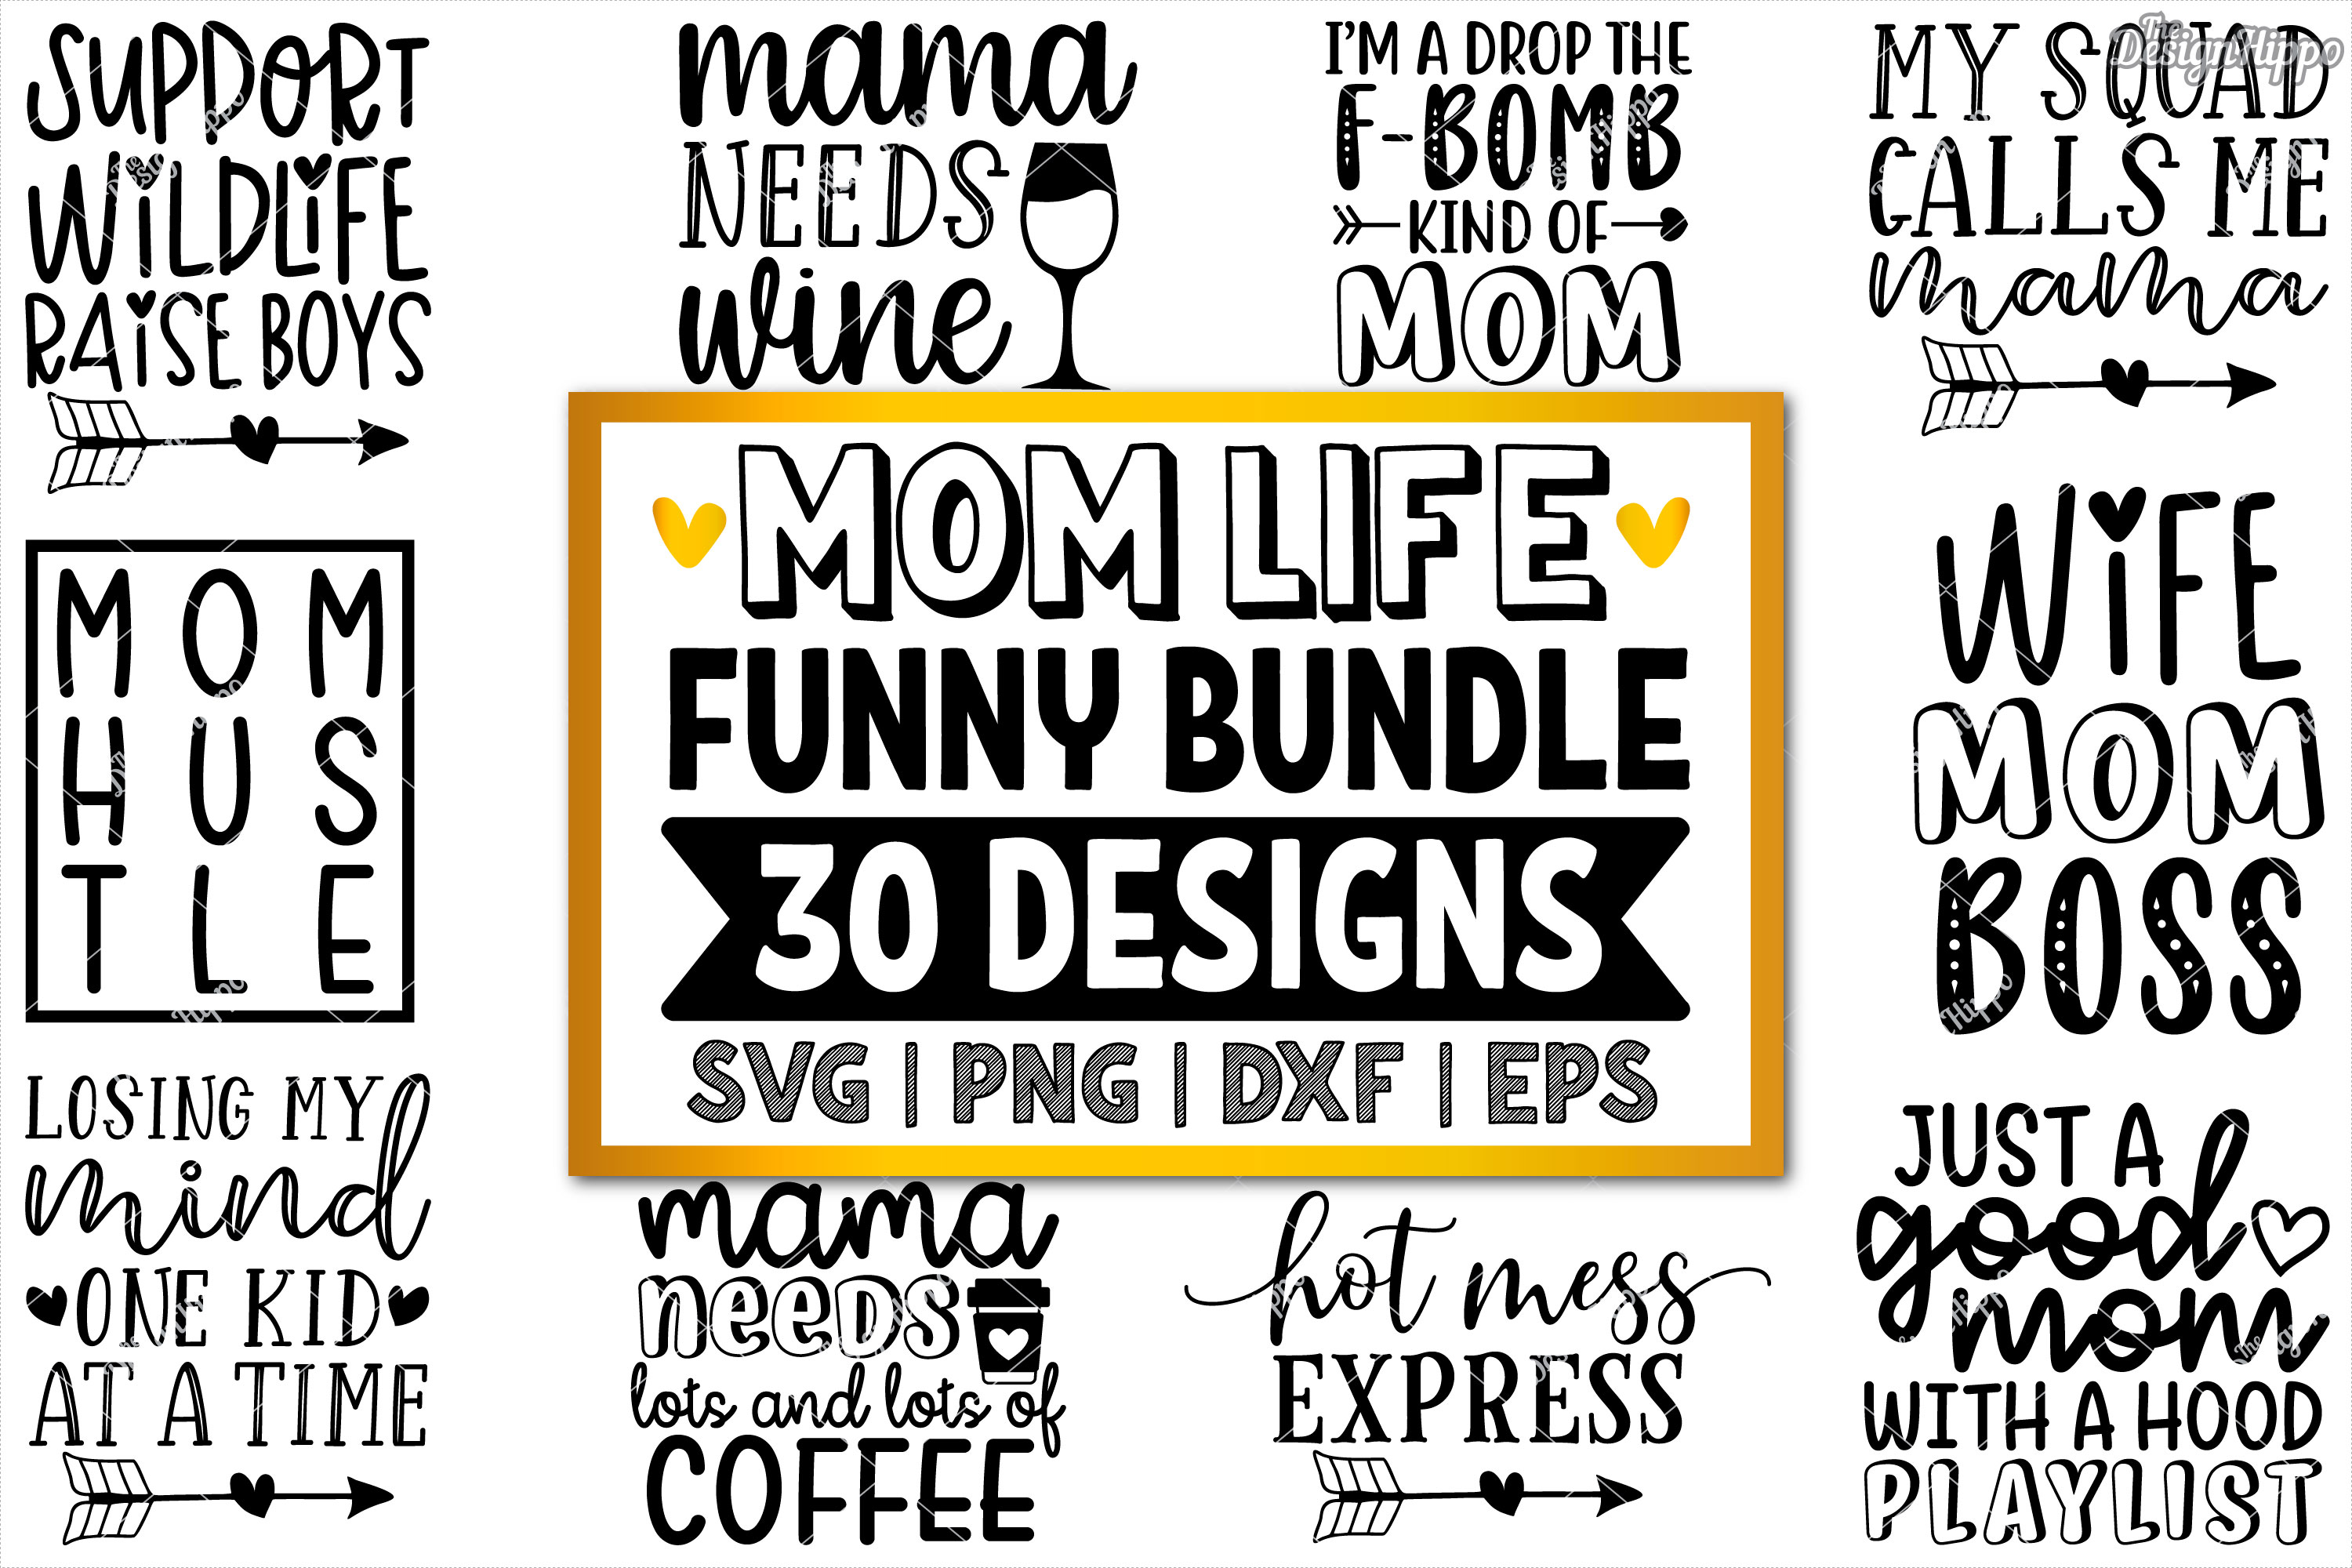 Funny Mom SVG Bundle of 30 Designs, DXF PNG Cricut Cut Files example image 1